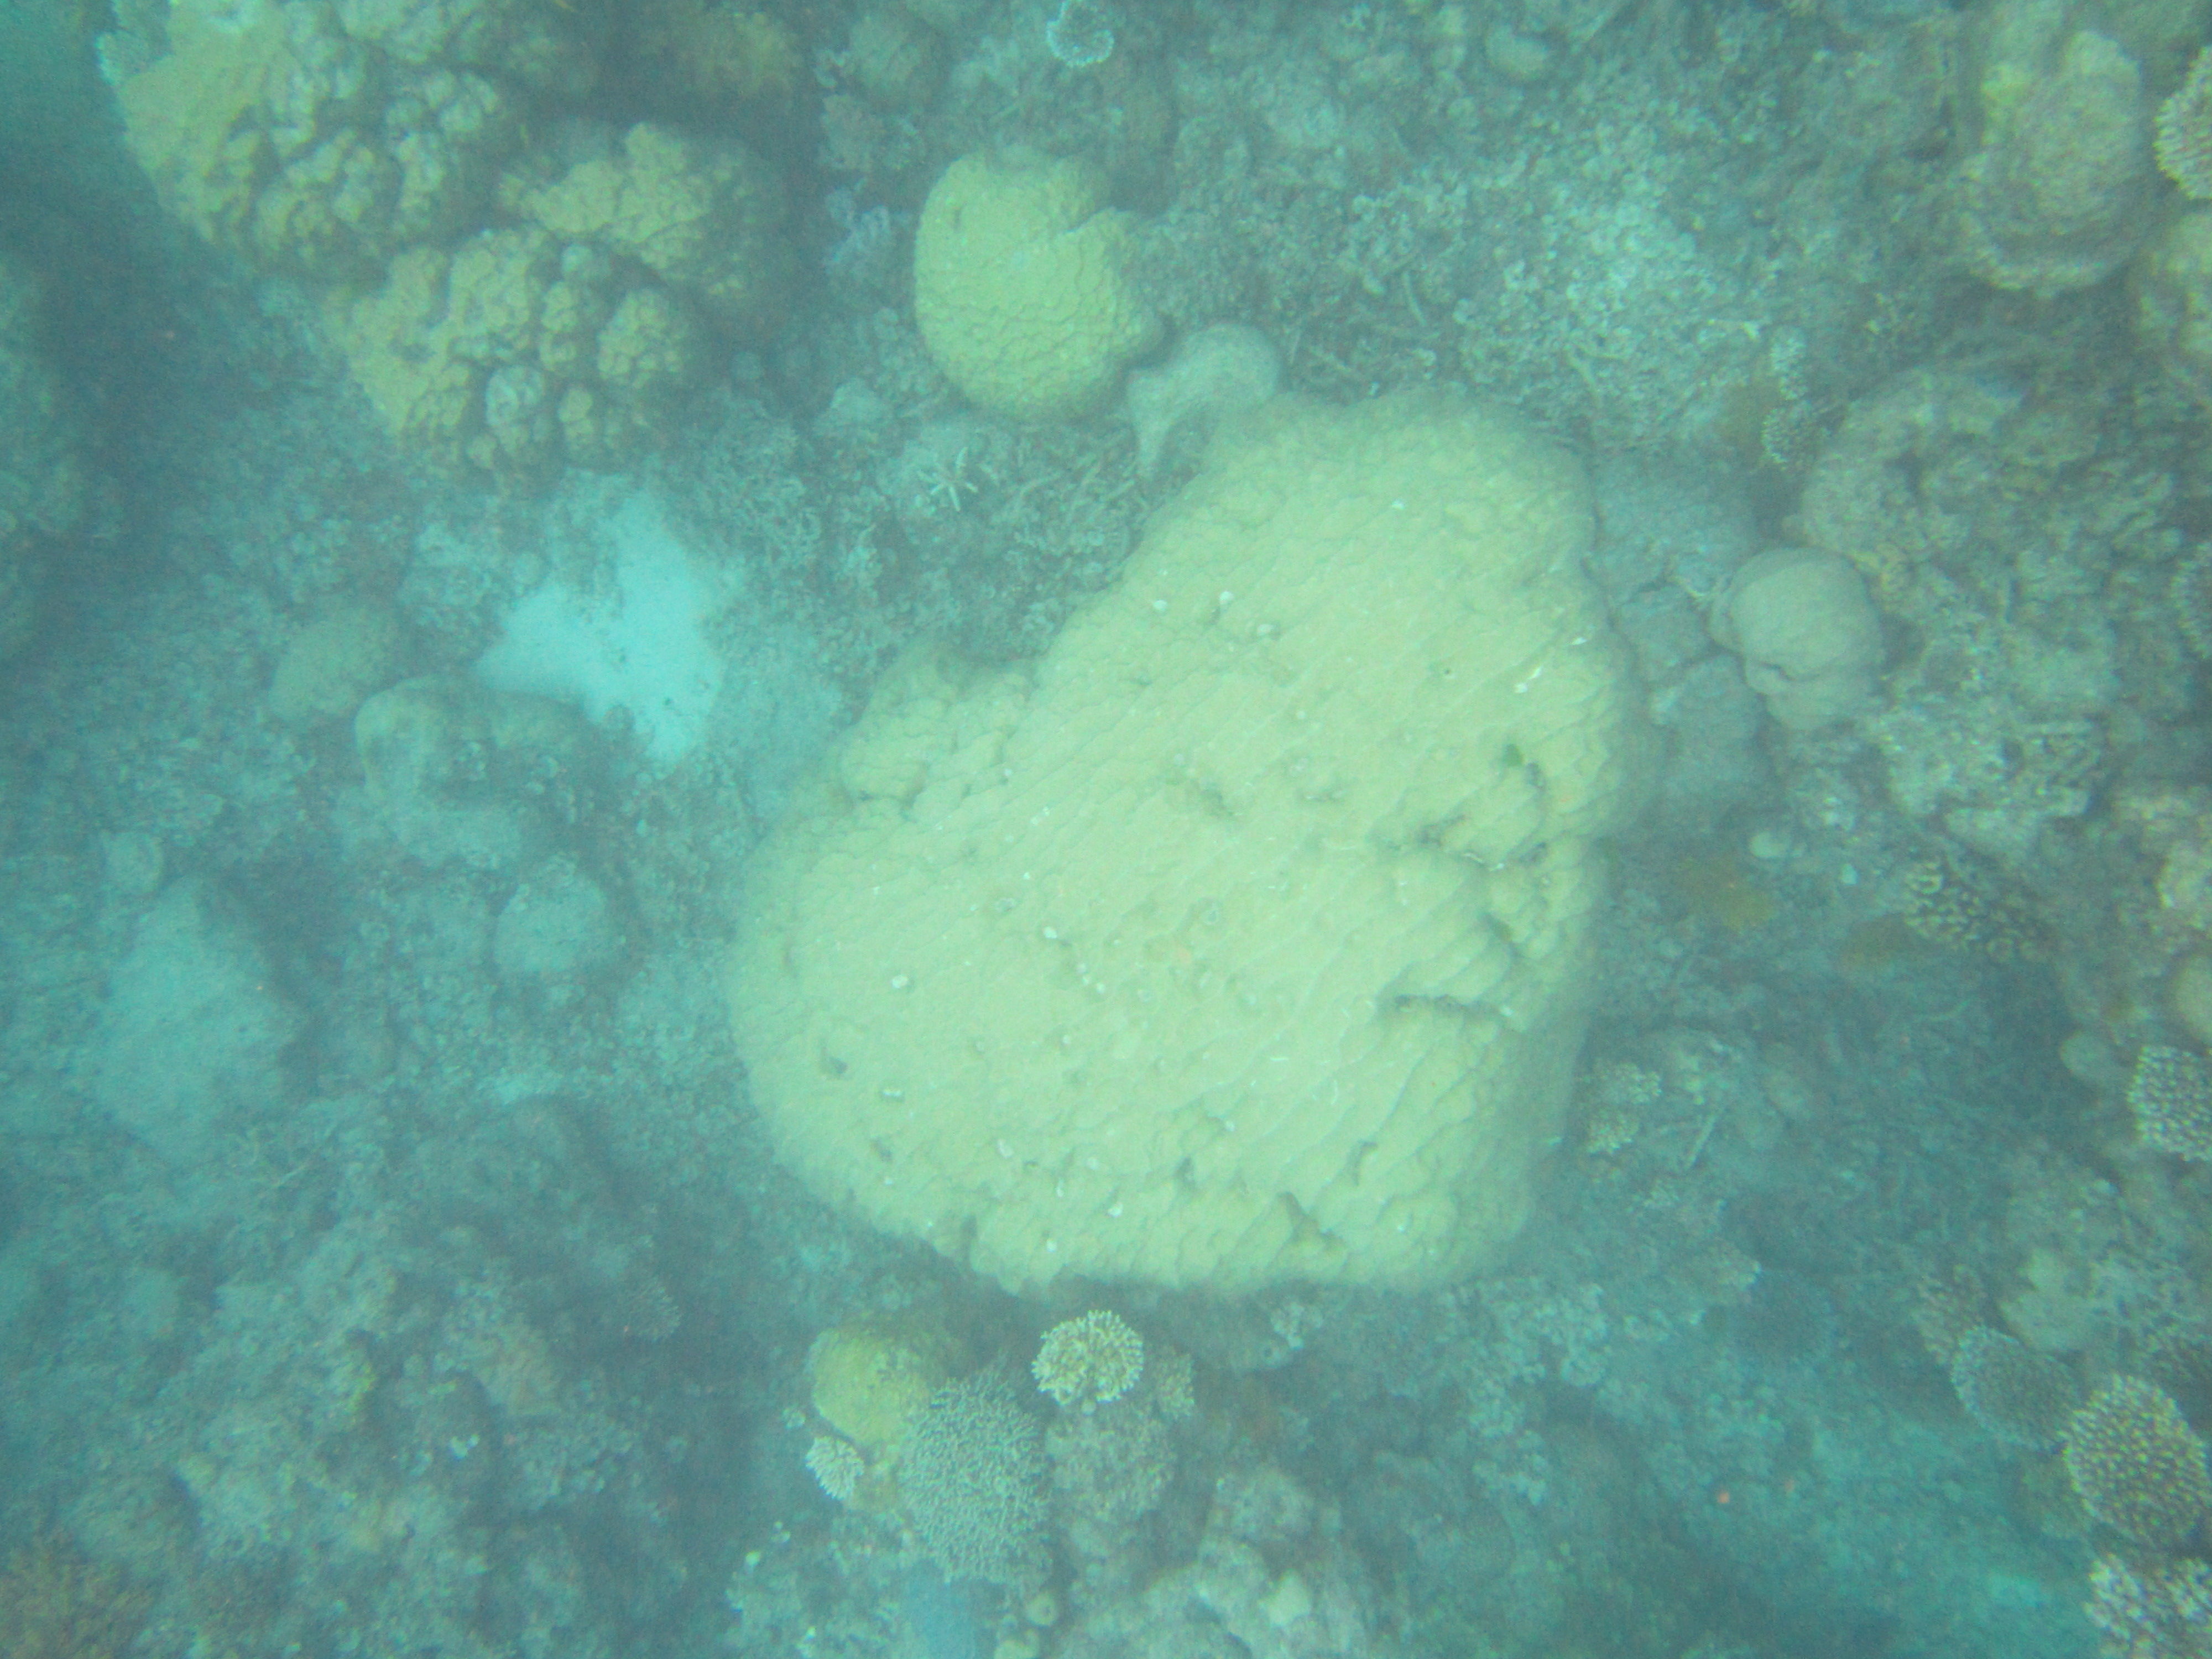 51. Heart-shaped reef